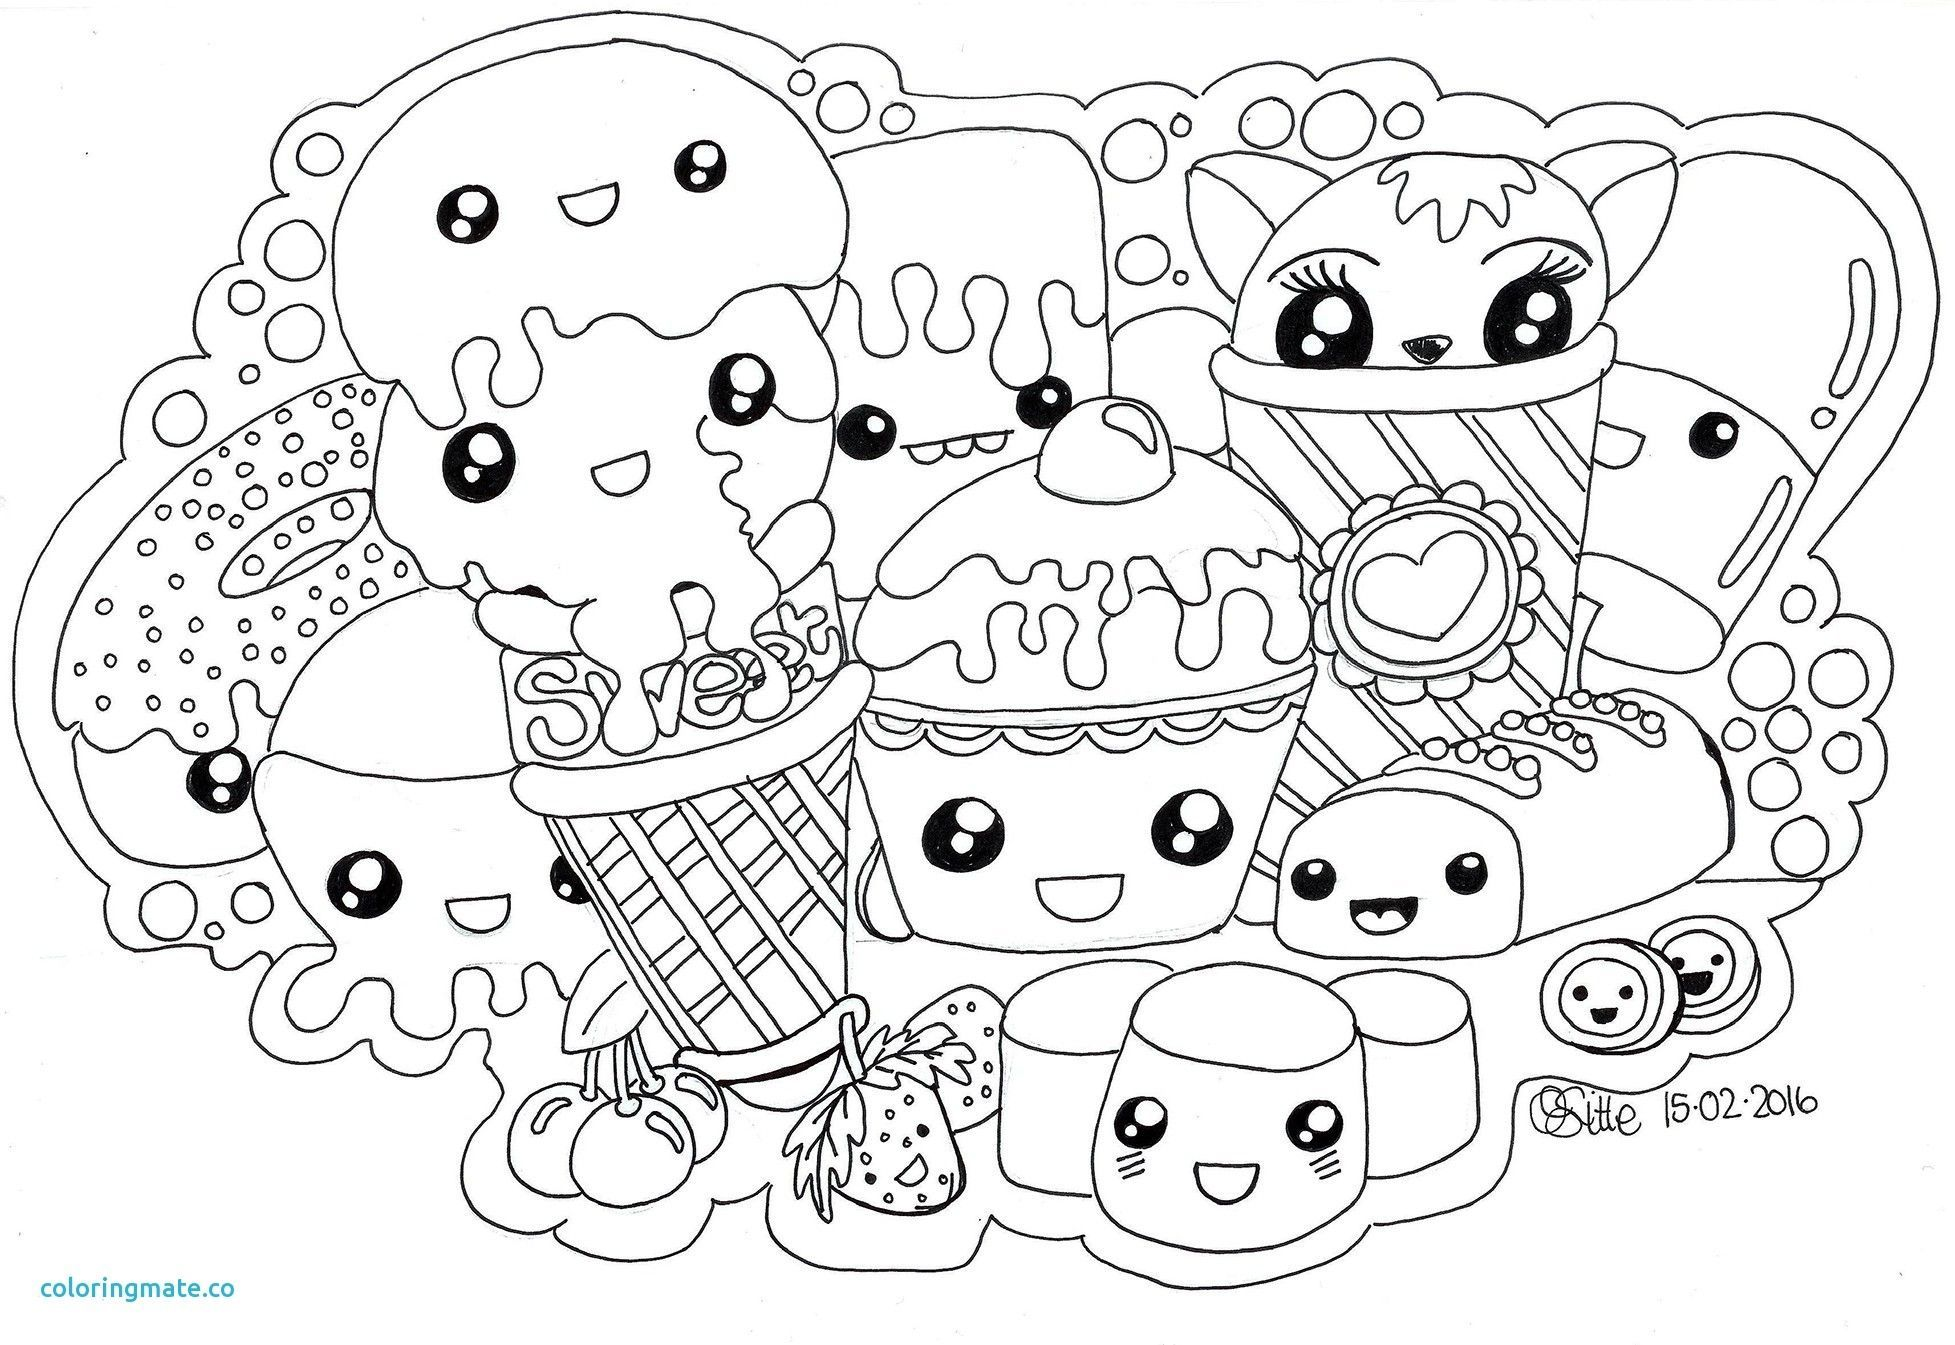 Coloring Pages Wallpapers   Wallpaper Cave